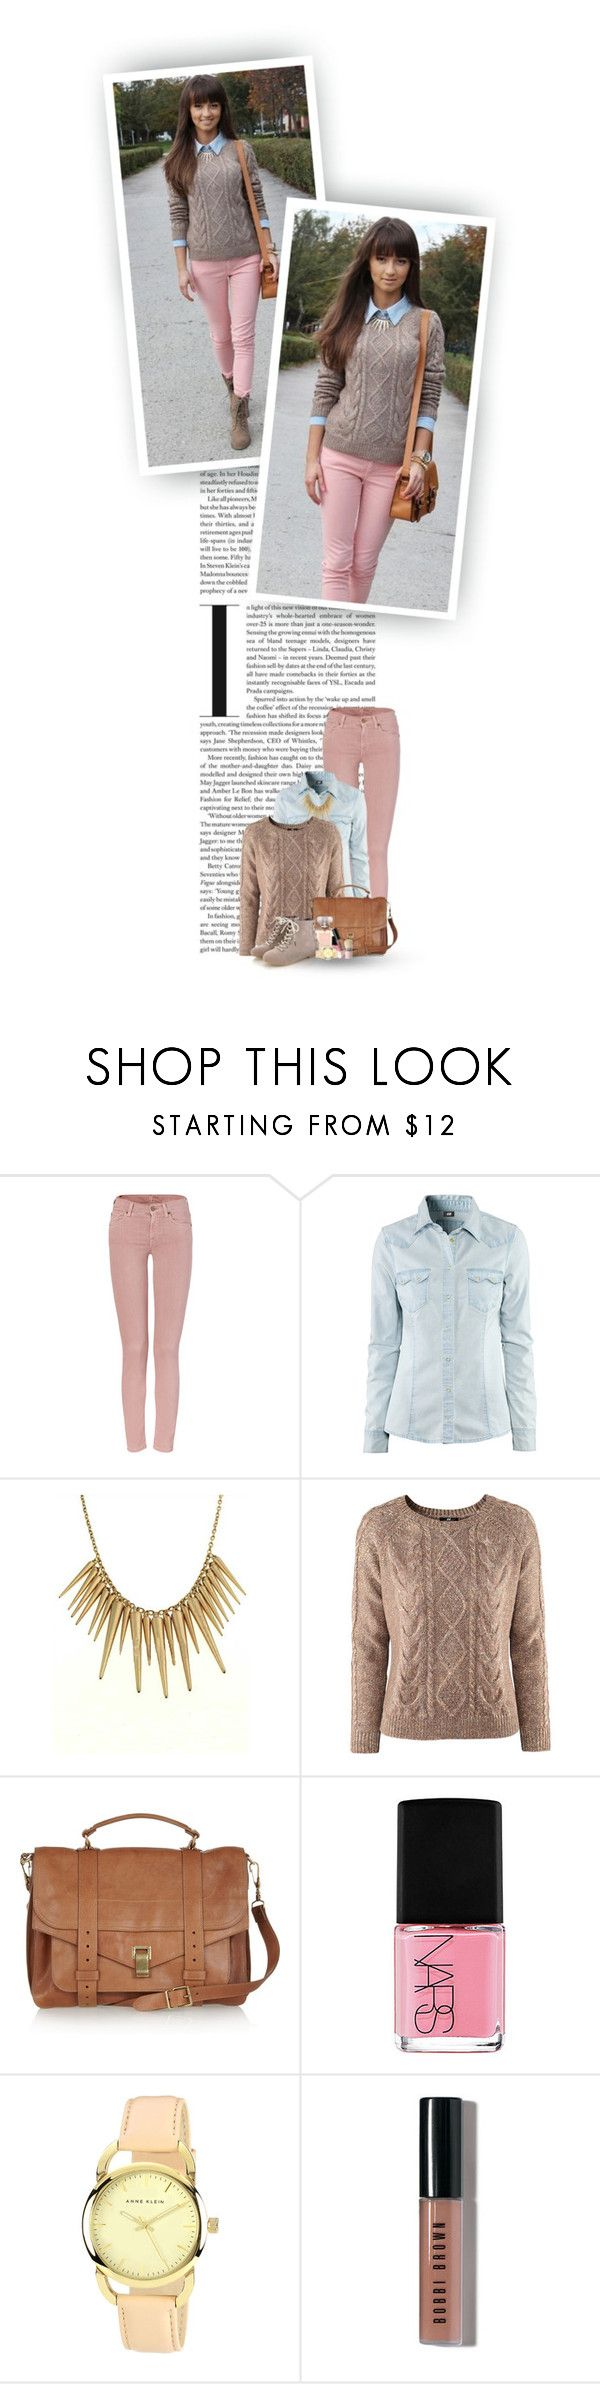 """""""All These Buckets Of Rain, You Can't Forget About It..."""" by hollowpoint-smile ❤ liked on Polyvore featuring 7 For All Mankind, H&M, Proenza Schouler, Chanel, NARS Cosmetics, Anne Klein, Bobbi Brown Cosmetics, philosophy, cable knit sweaters and denim shirts"""